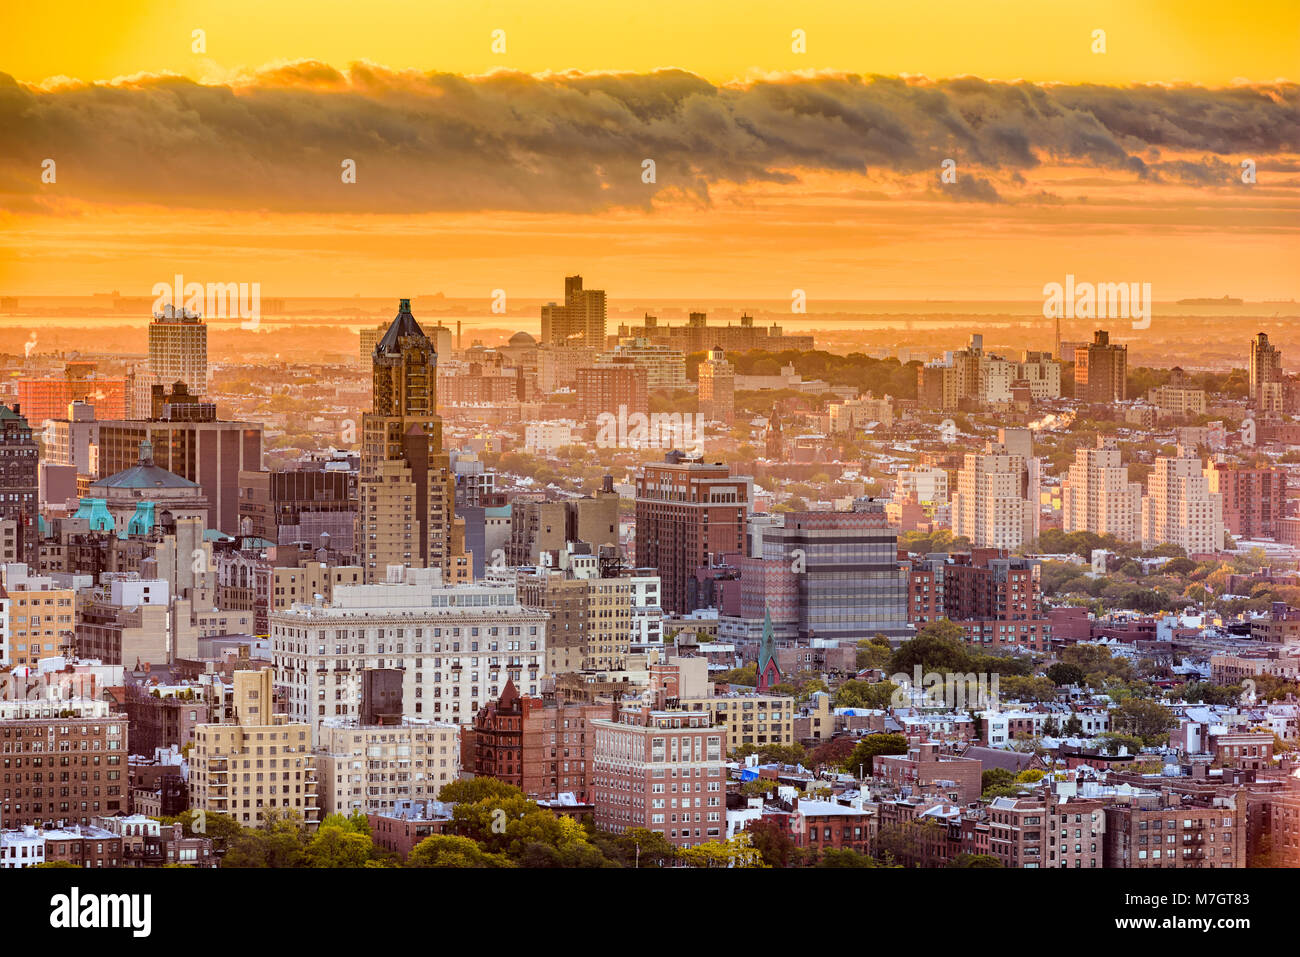 Brooklyn, New York, USA cityscape over downtown in the late afternoon. - Stock Image